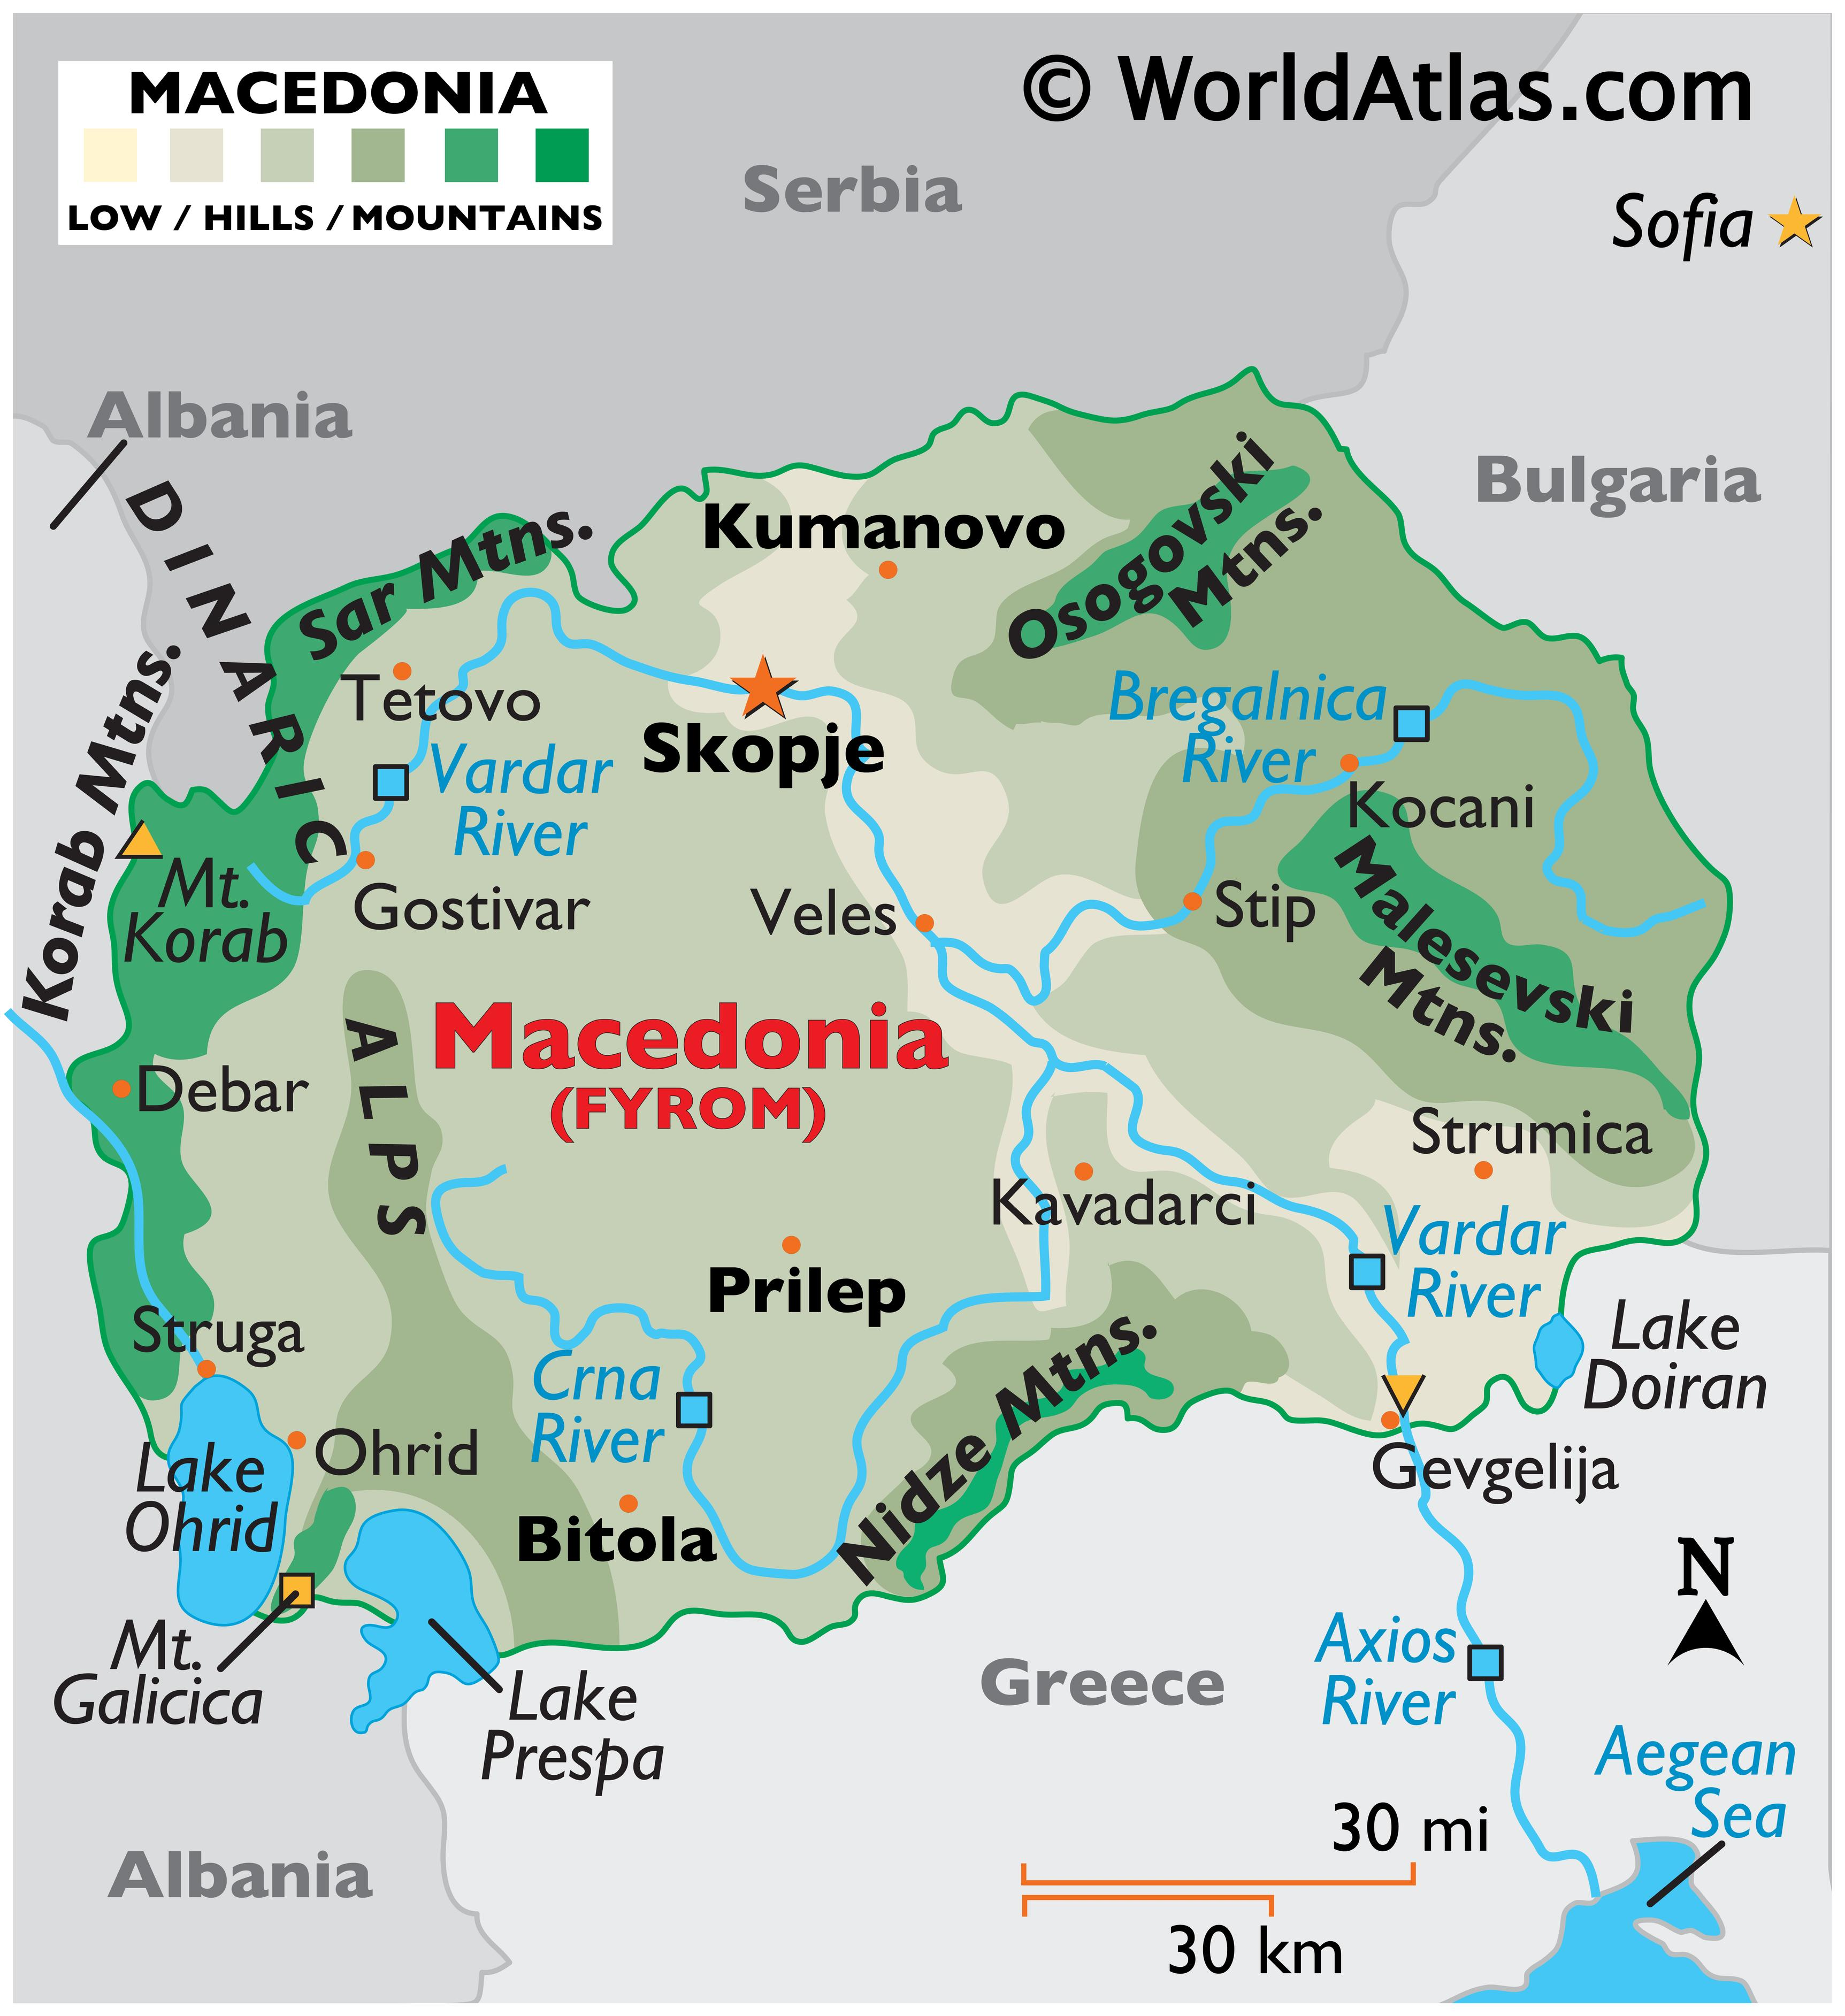 Physical Map North Macedonia showing relief, major mountain ranges, rivers, important cities, major lakes, bordering countries, etc.